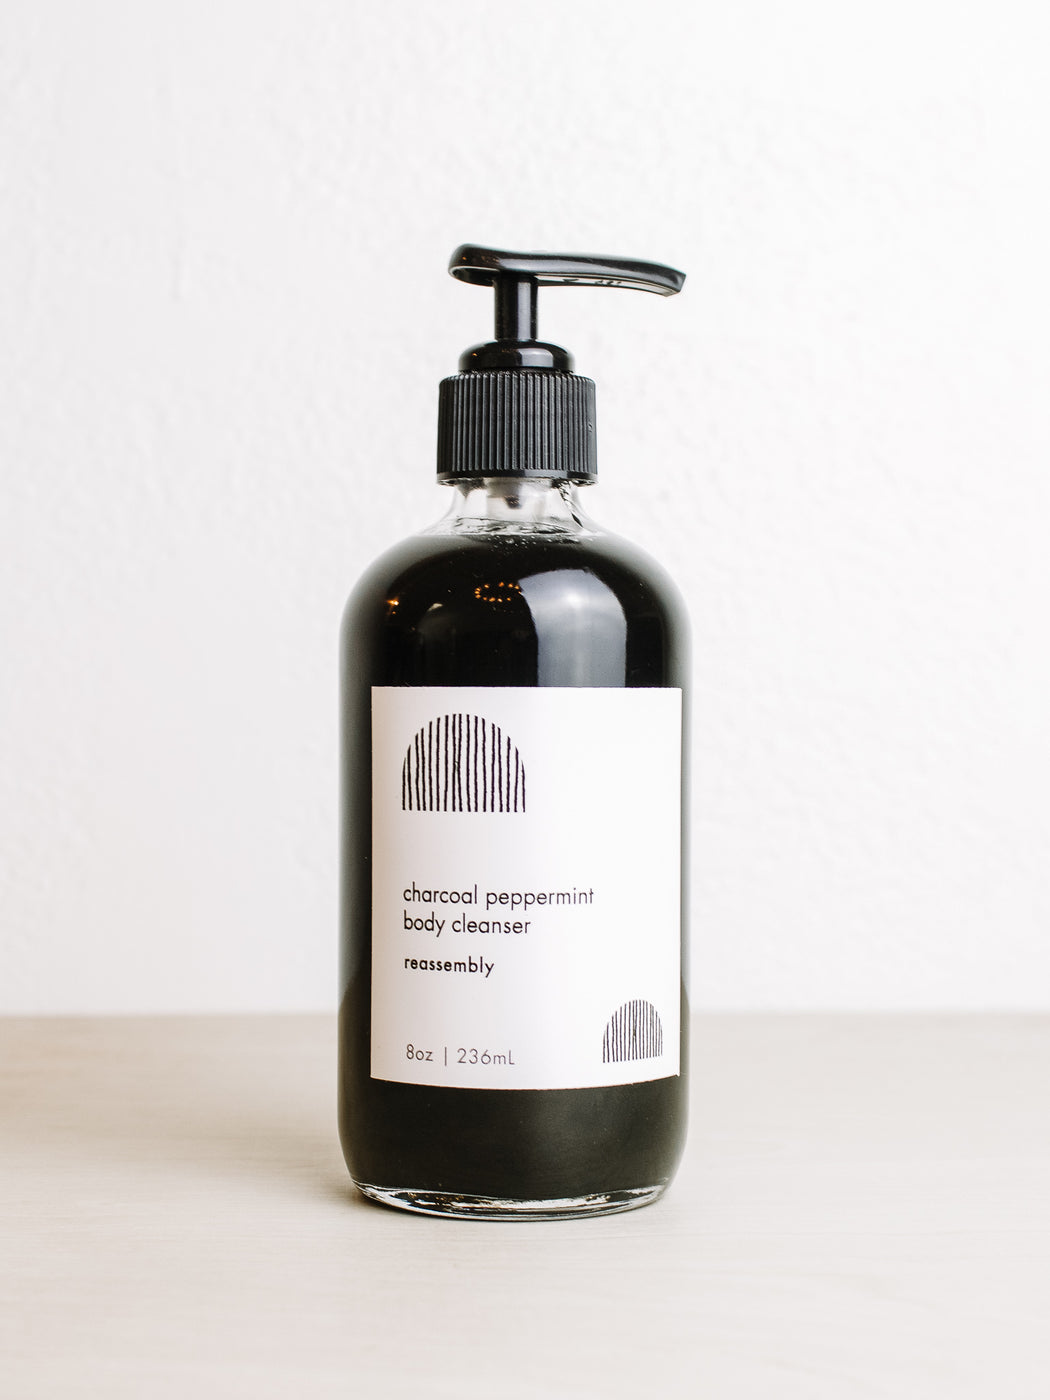 Reassembly-Charcoal Peppermint Body Cleanser